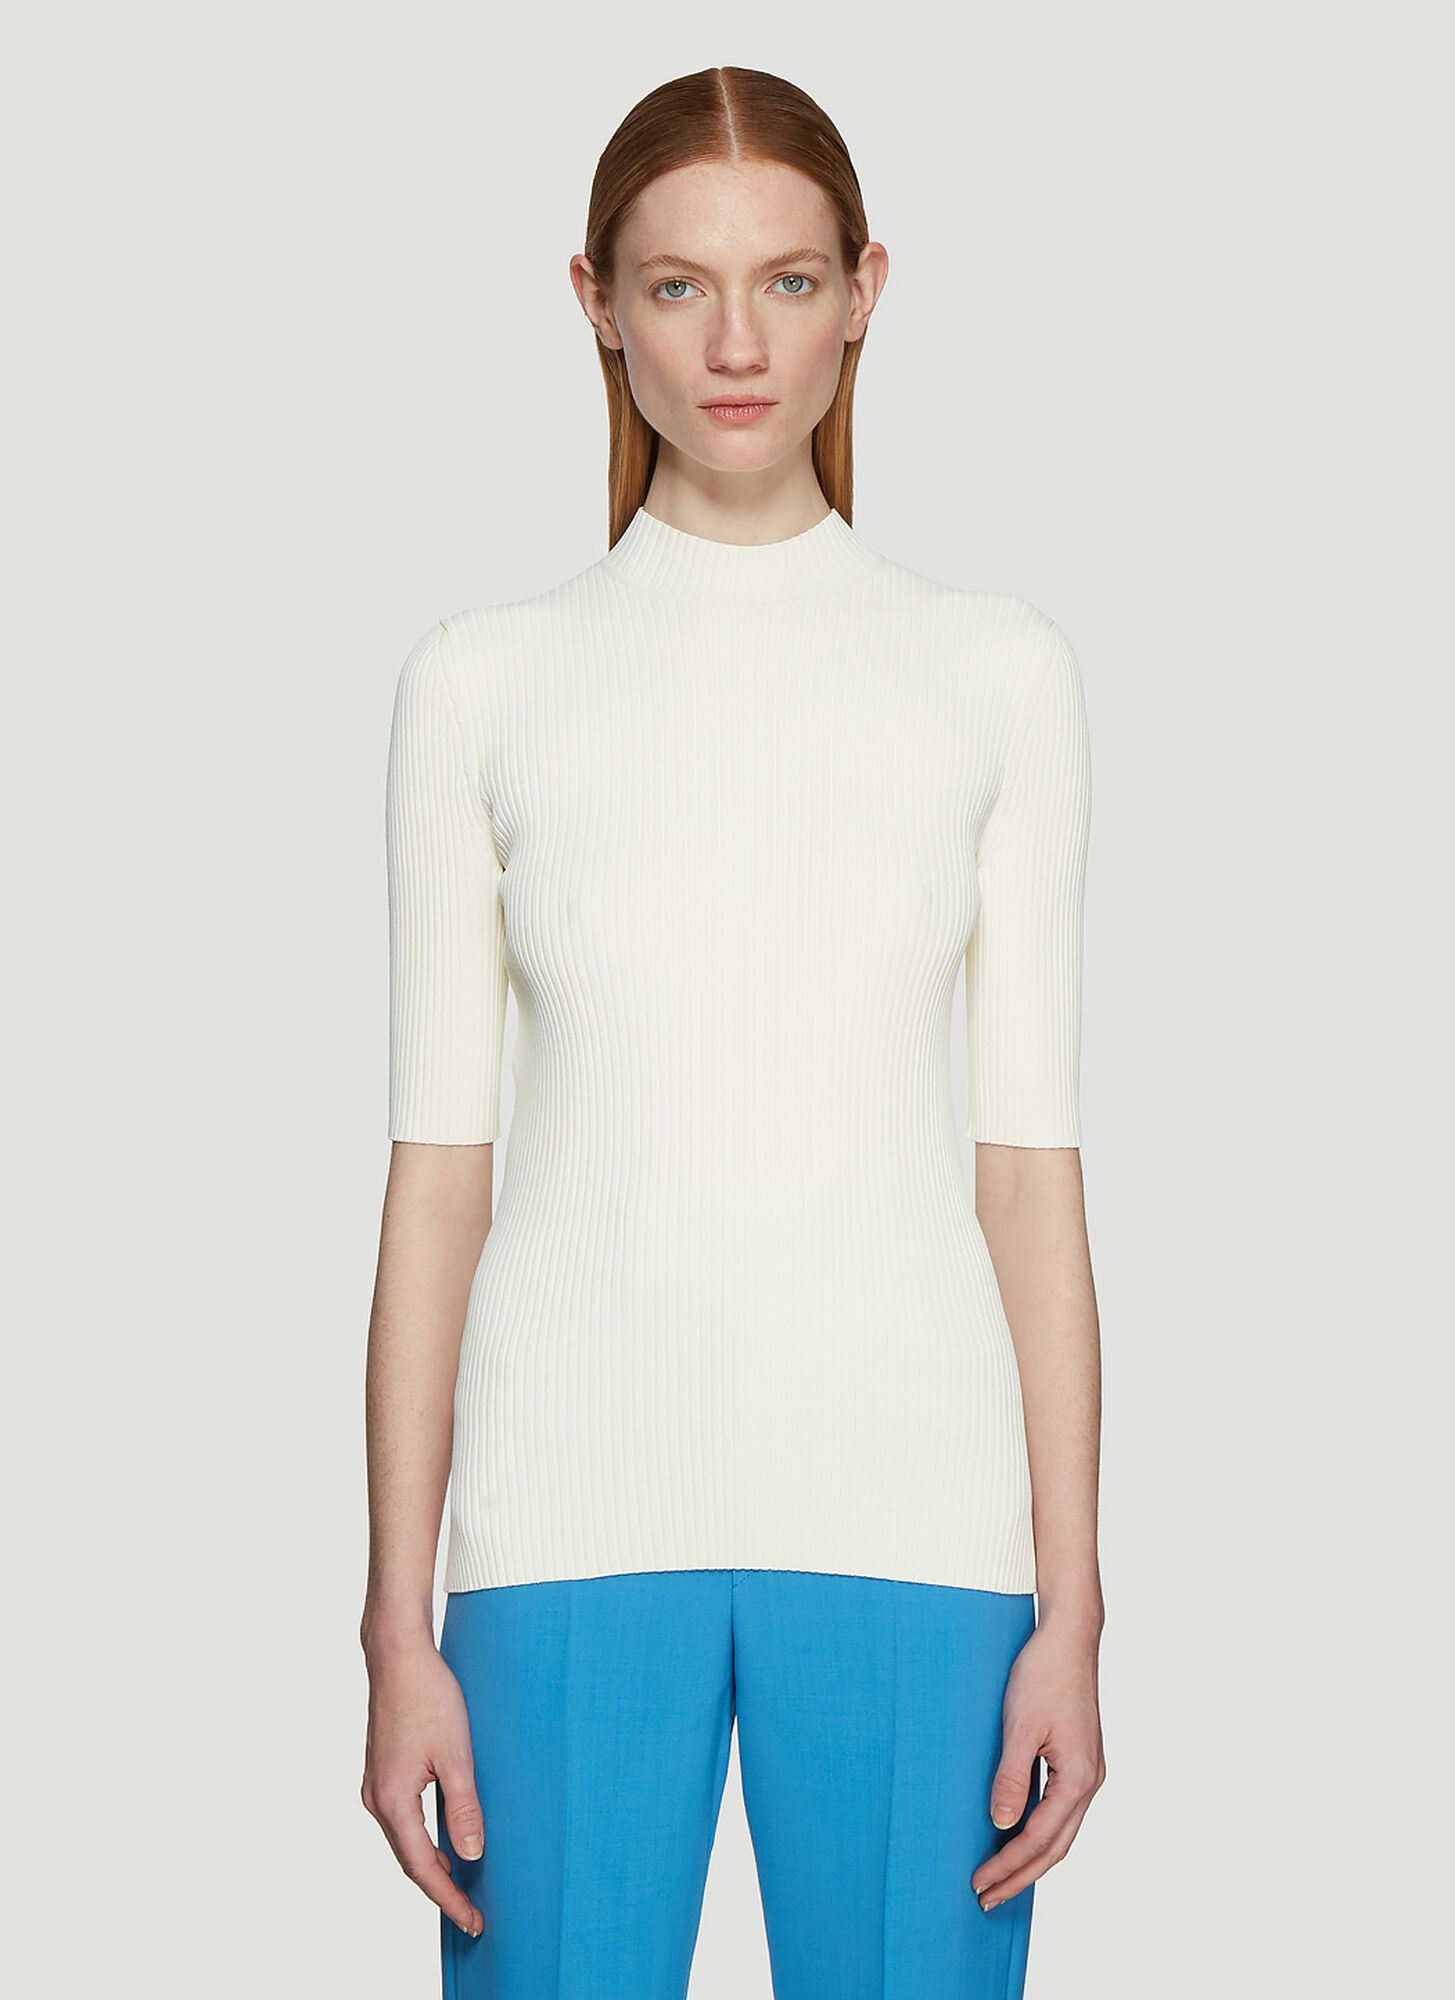 Kwaidan Editions Ribbed Turtleneck Top in Cream